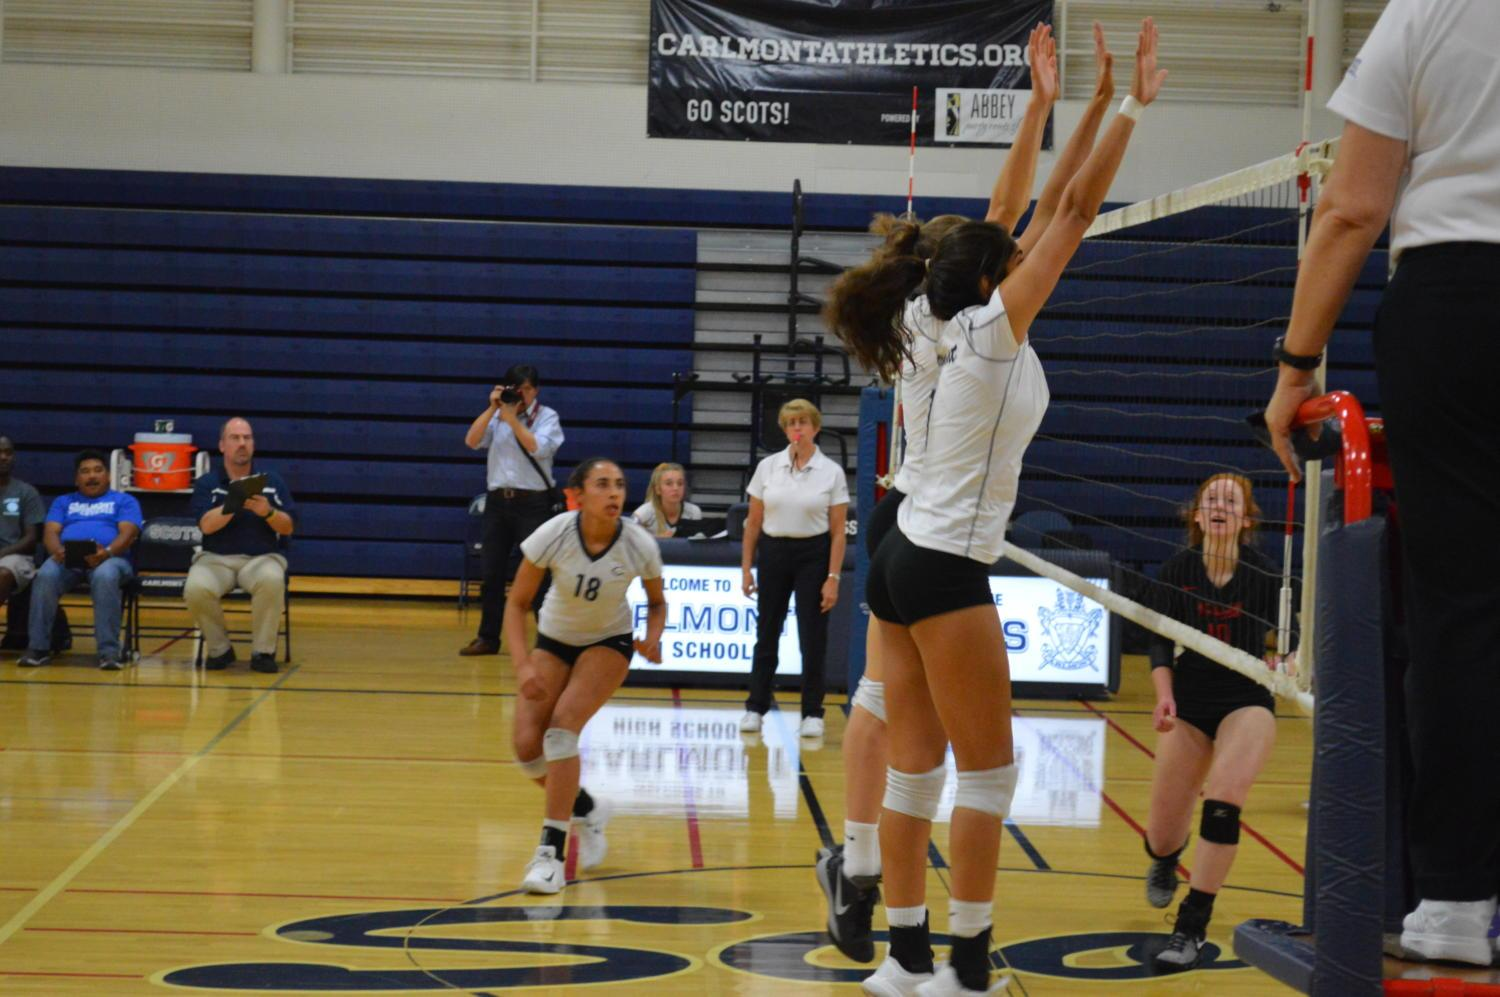 Sophomore+Catherine+Dahlberg+and+sophomore+Alisha+Mitha+go+up+for+a+block+against+a+hit+by+the+Dons.